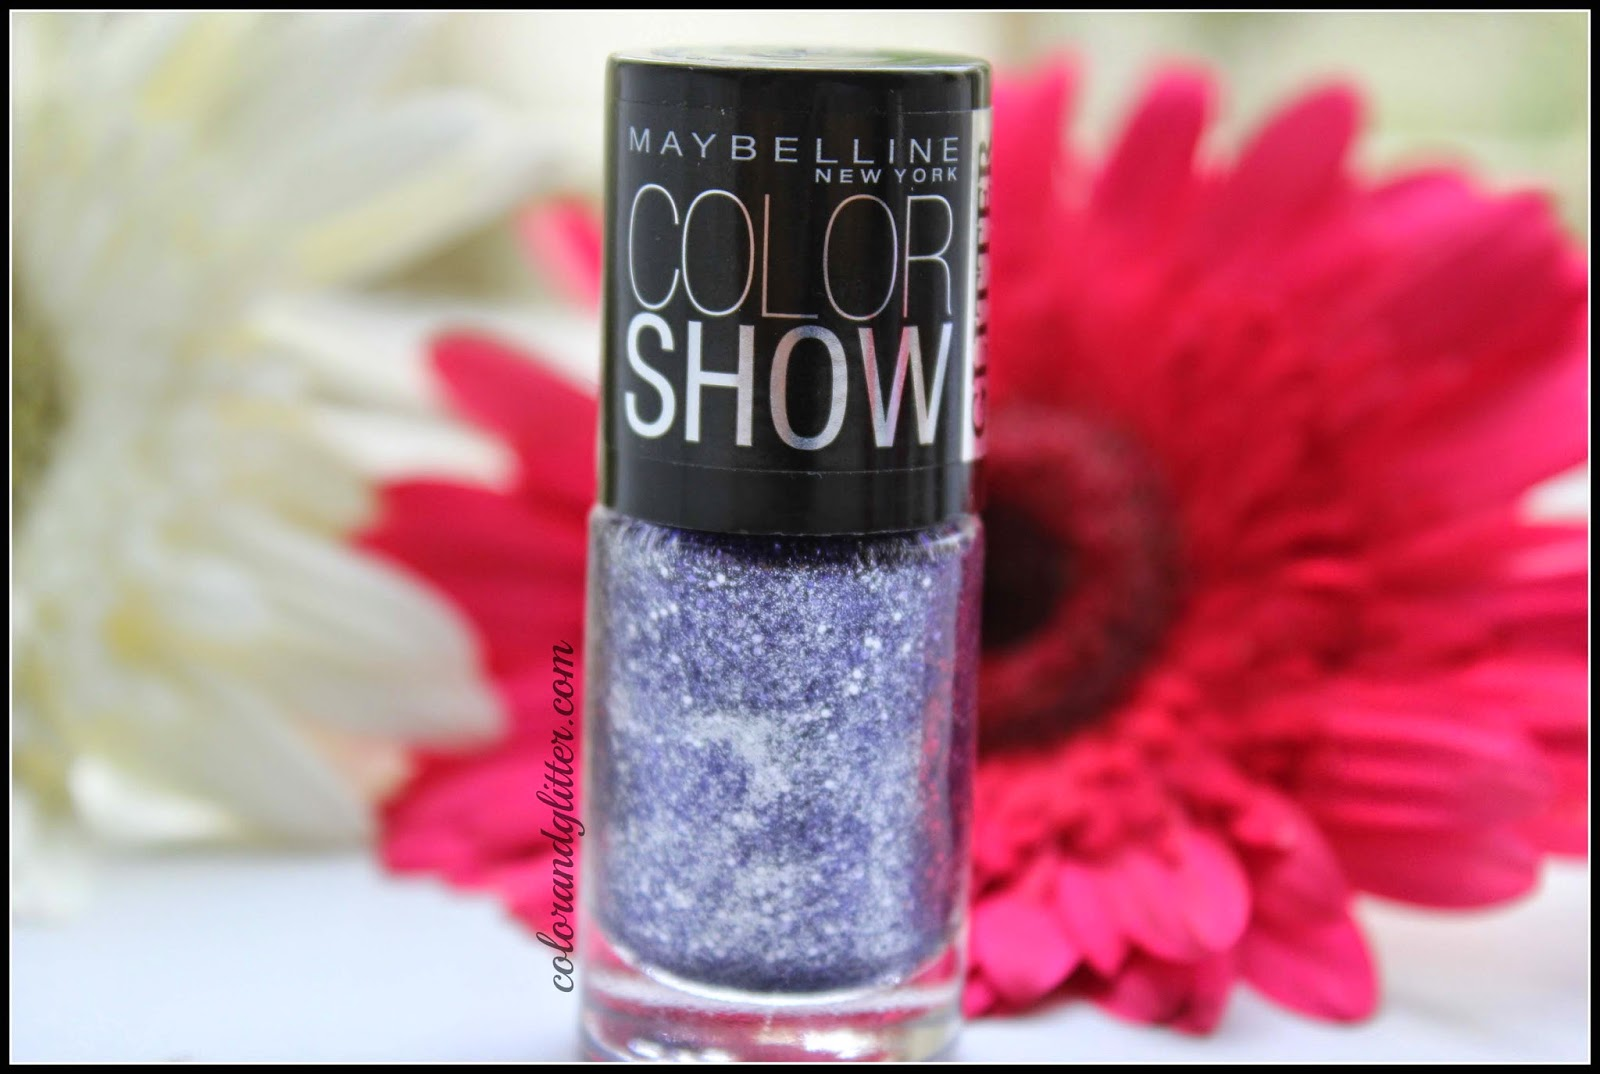 Maybelline Color Show Glitter Mania Nail Polish in Paparazzi Purple || Review and Swatches